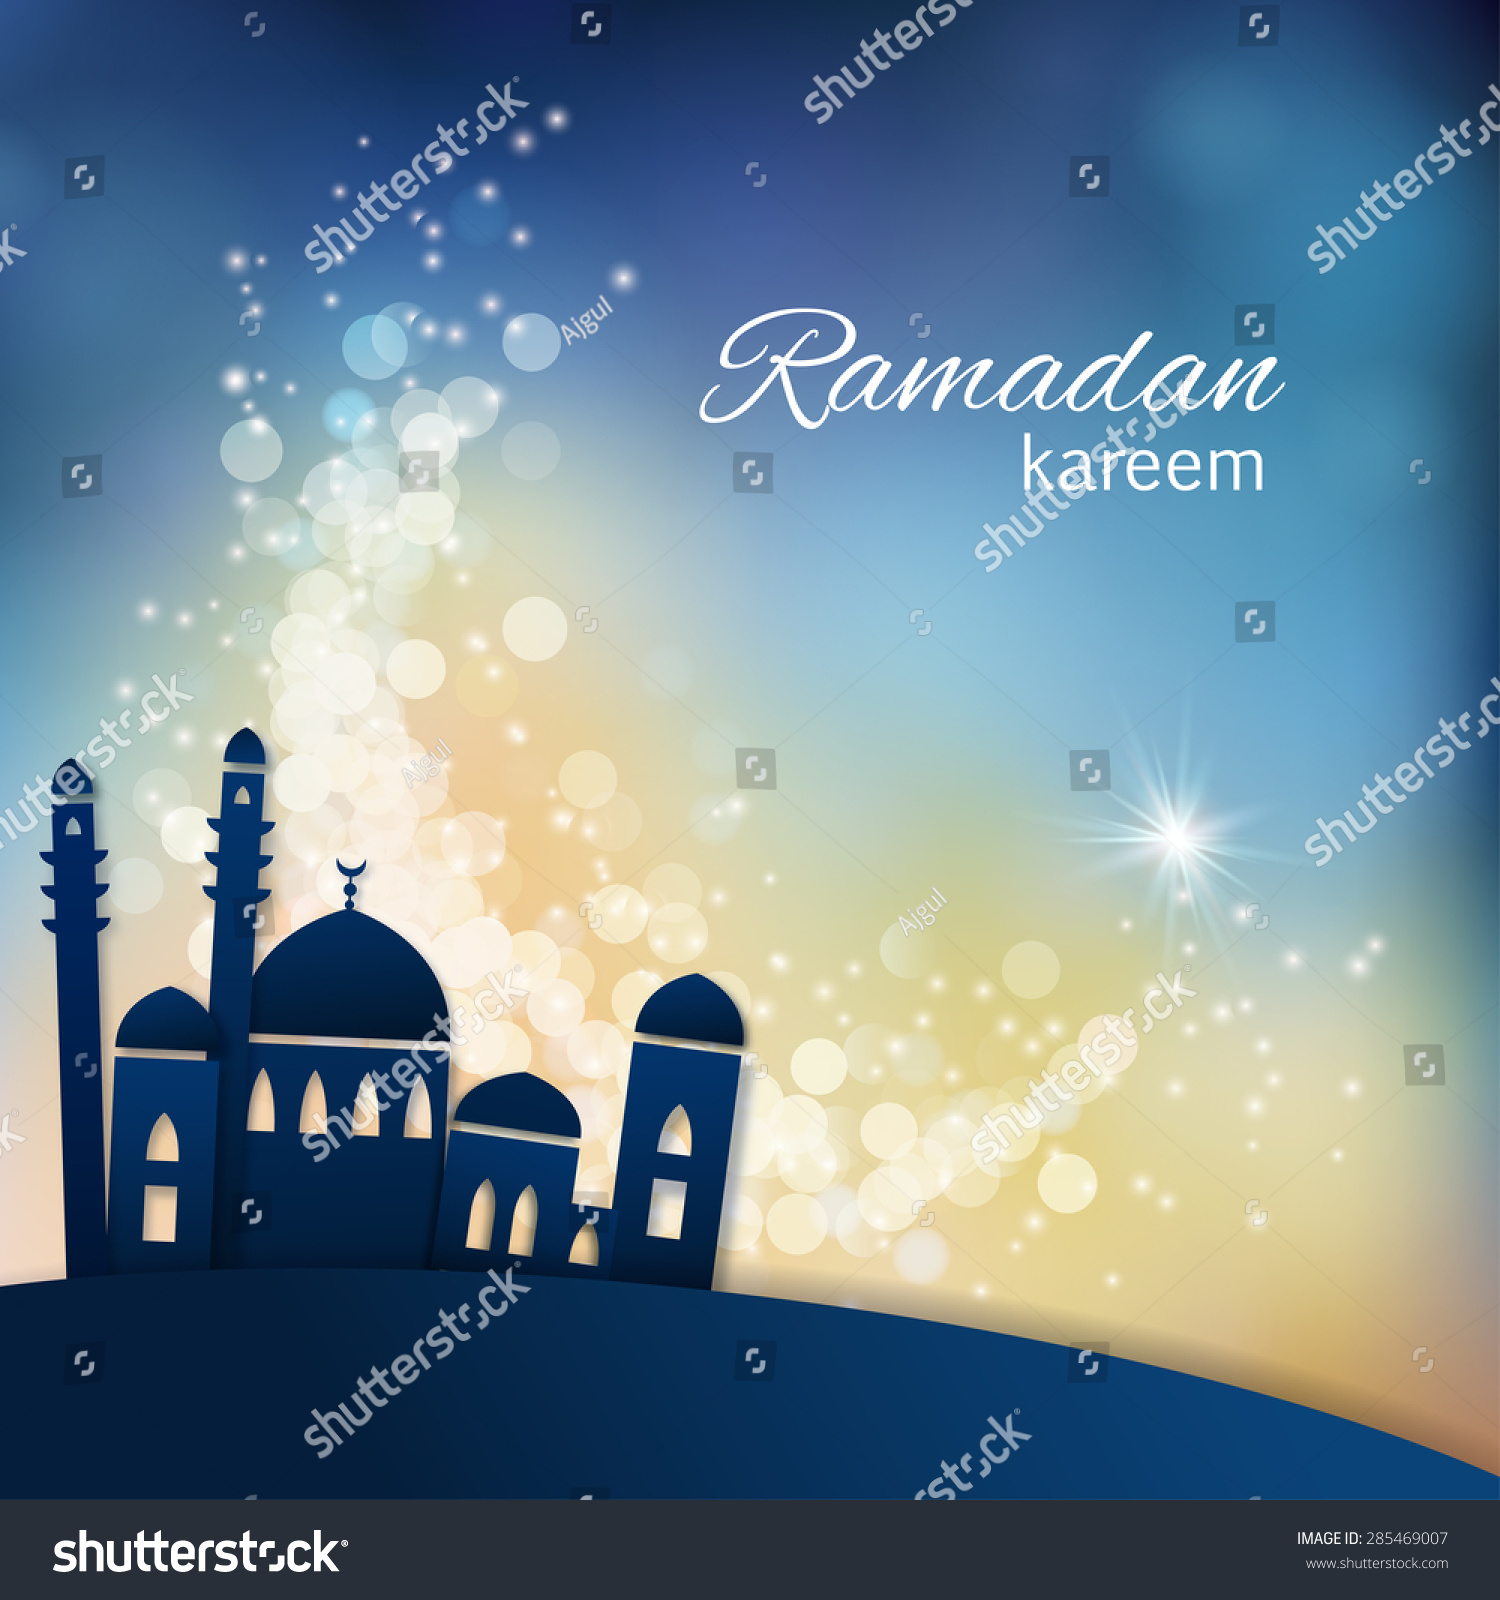 Ramadan greetings background View of mosque in shiny blue night background Vector illustration